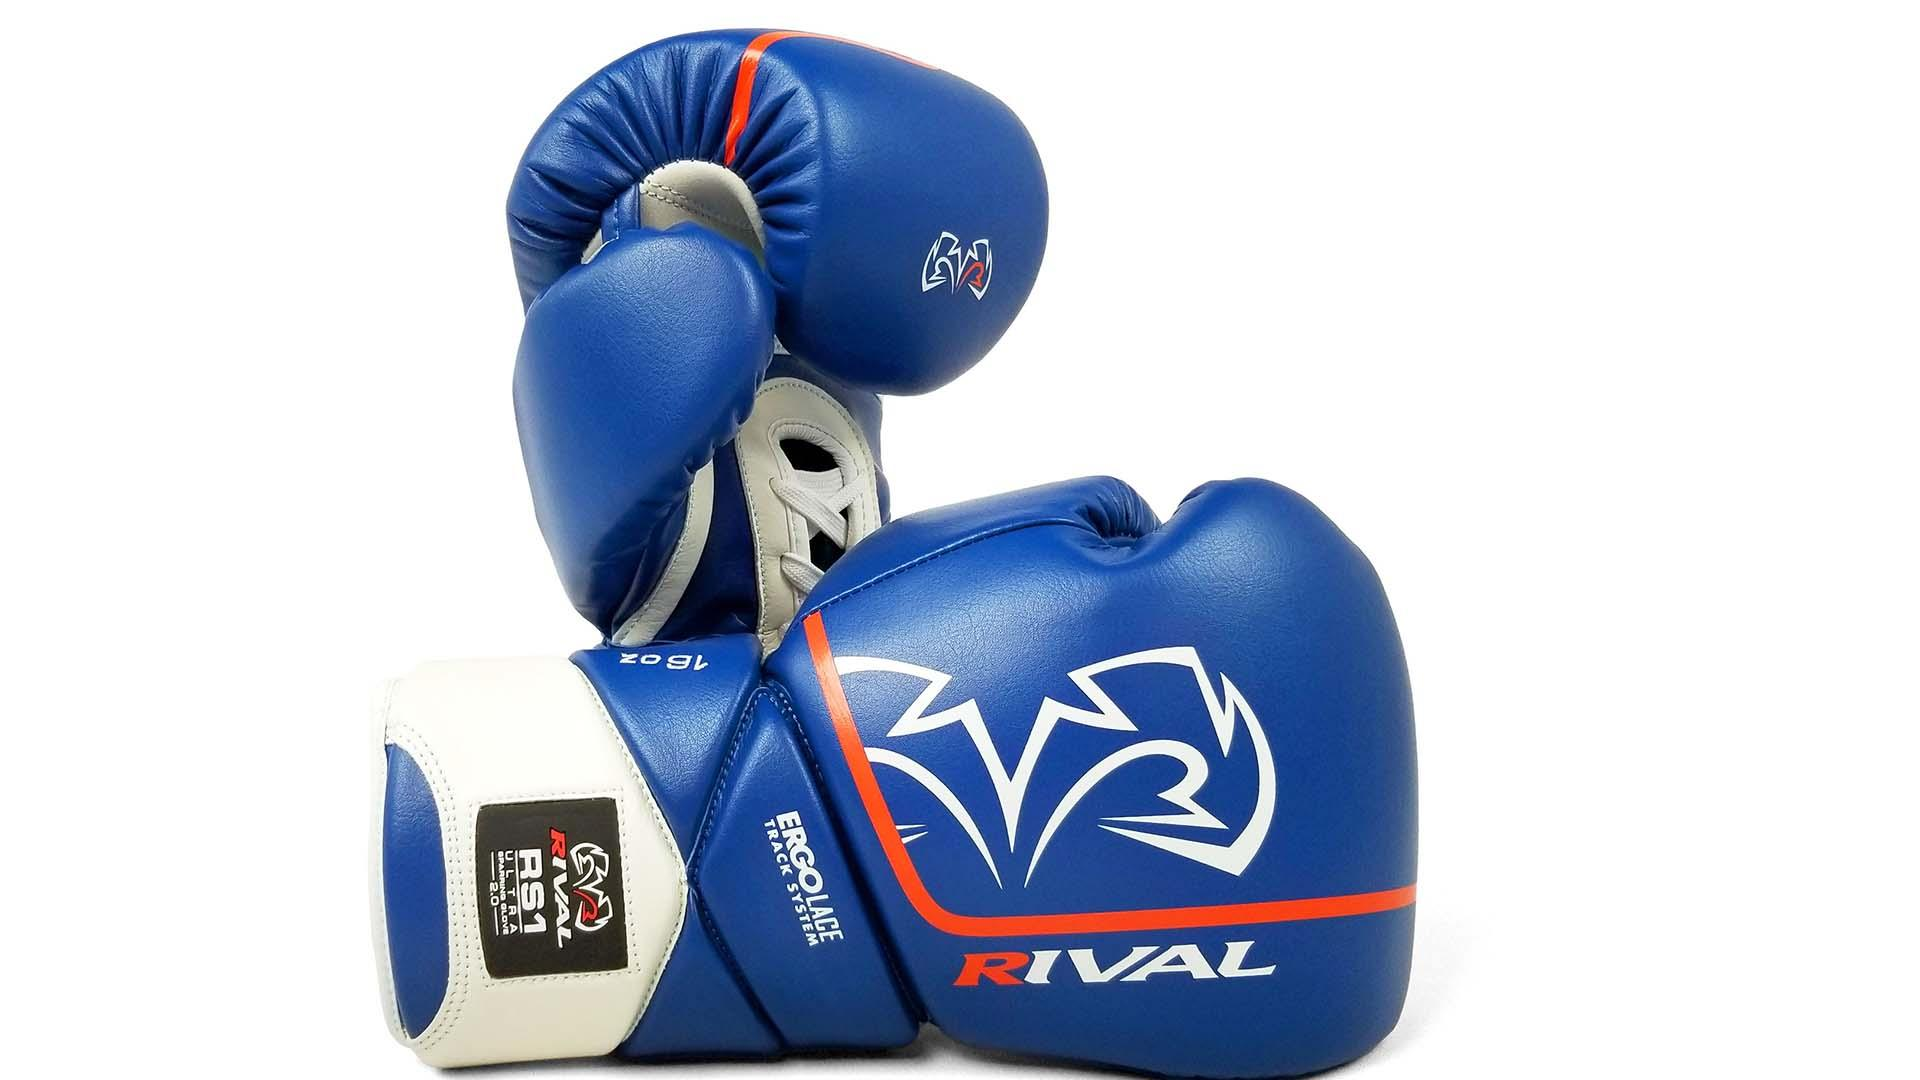 Rival RS1 gloves